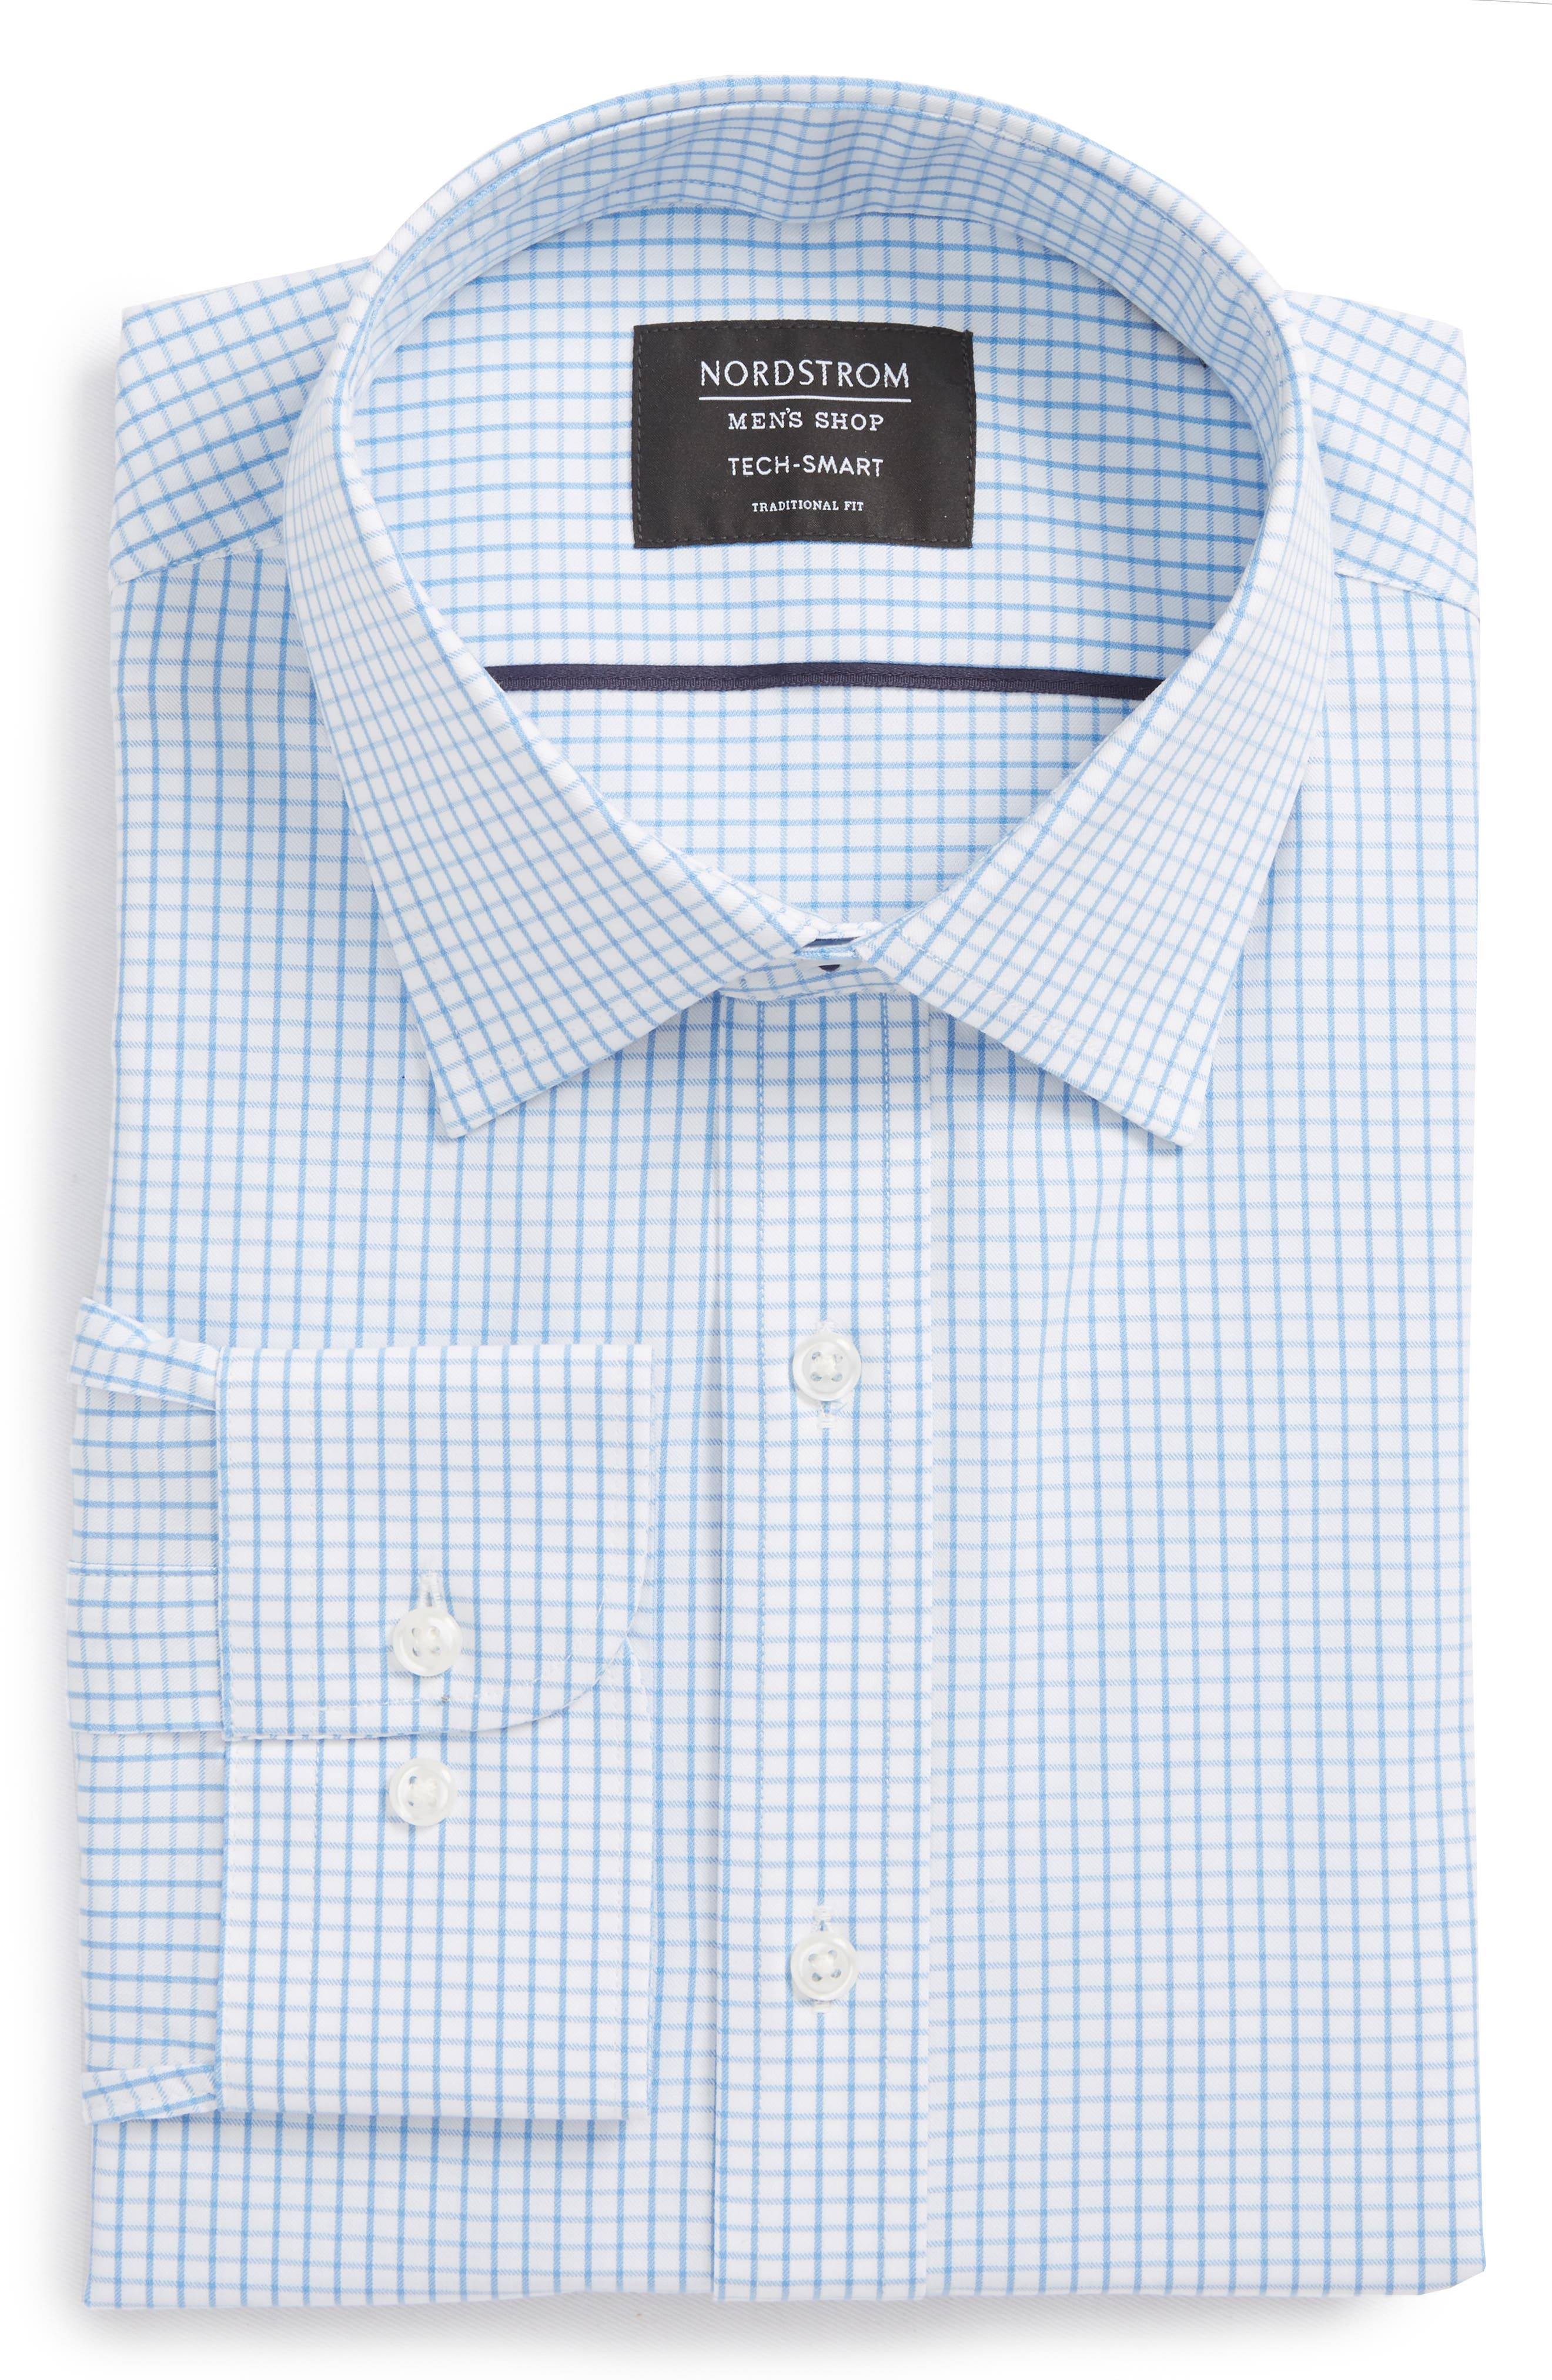 Tech-Smart Traditional Fit Stretch Tattersall Dress Shirt,                         Main,                         color, 450